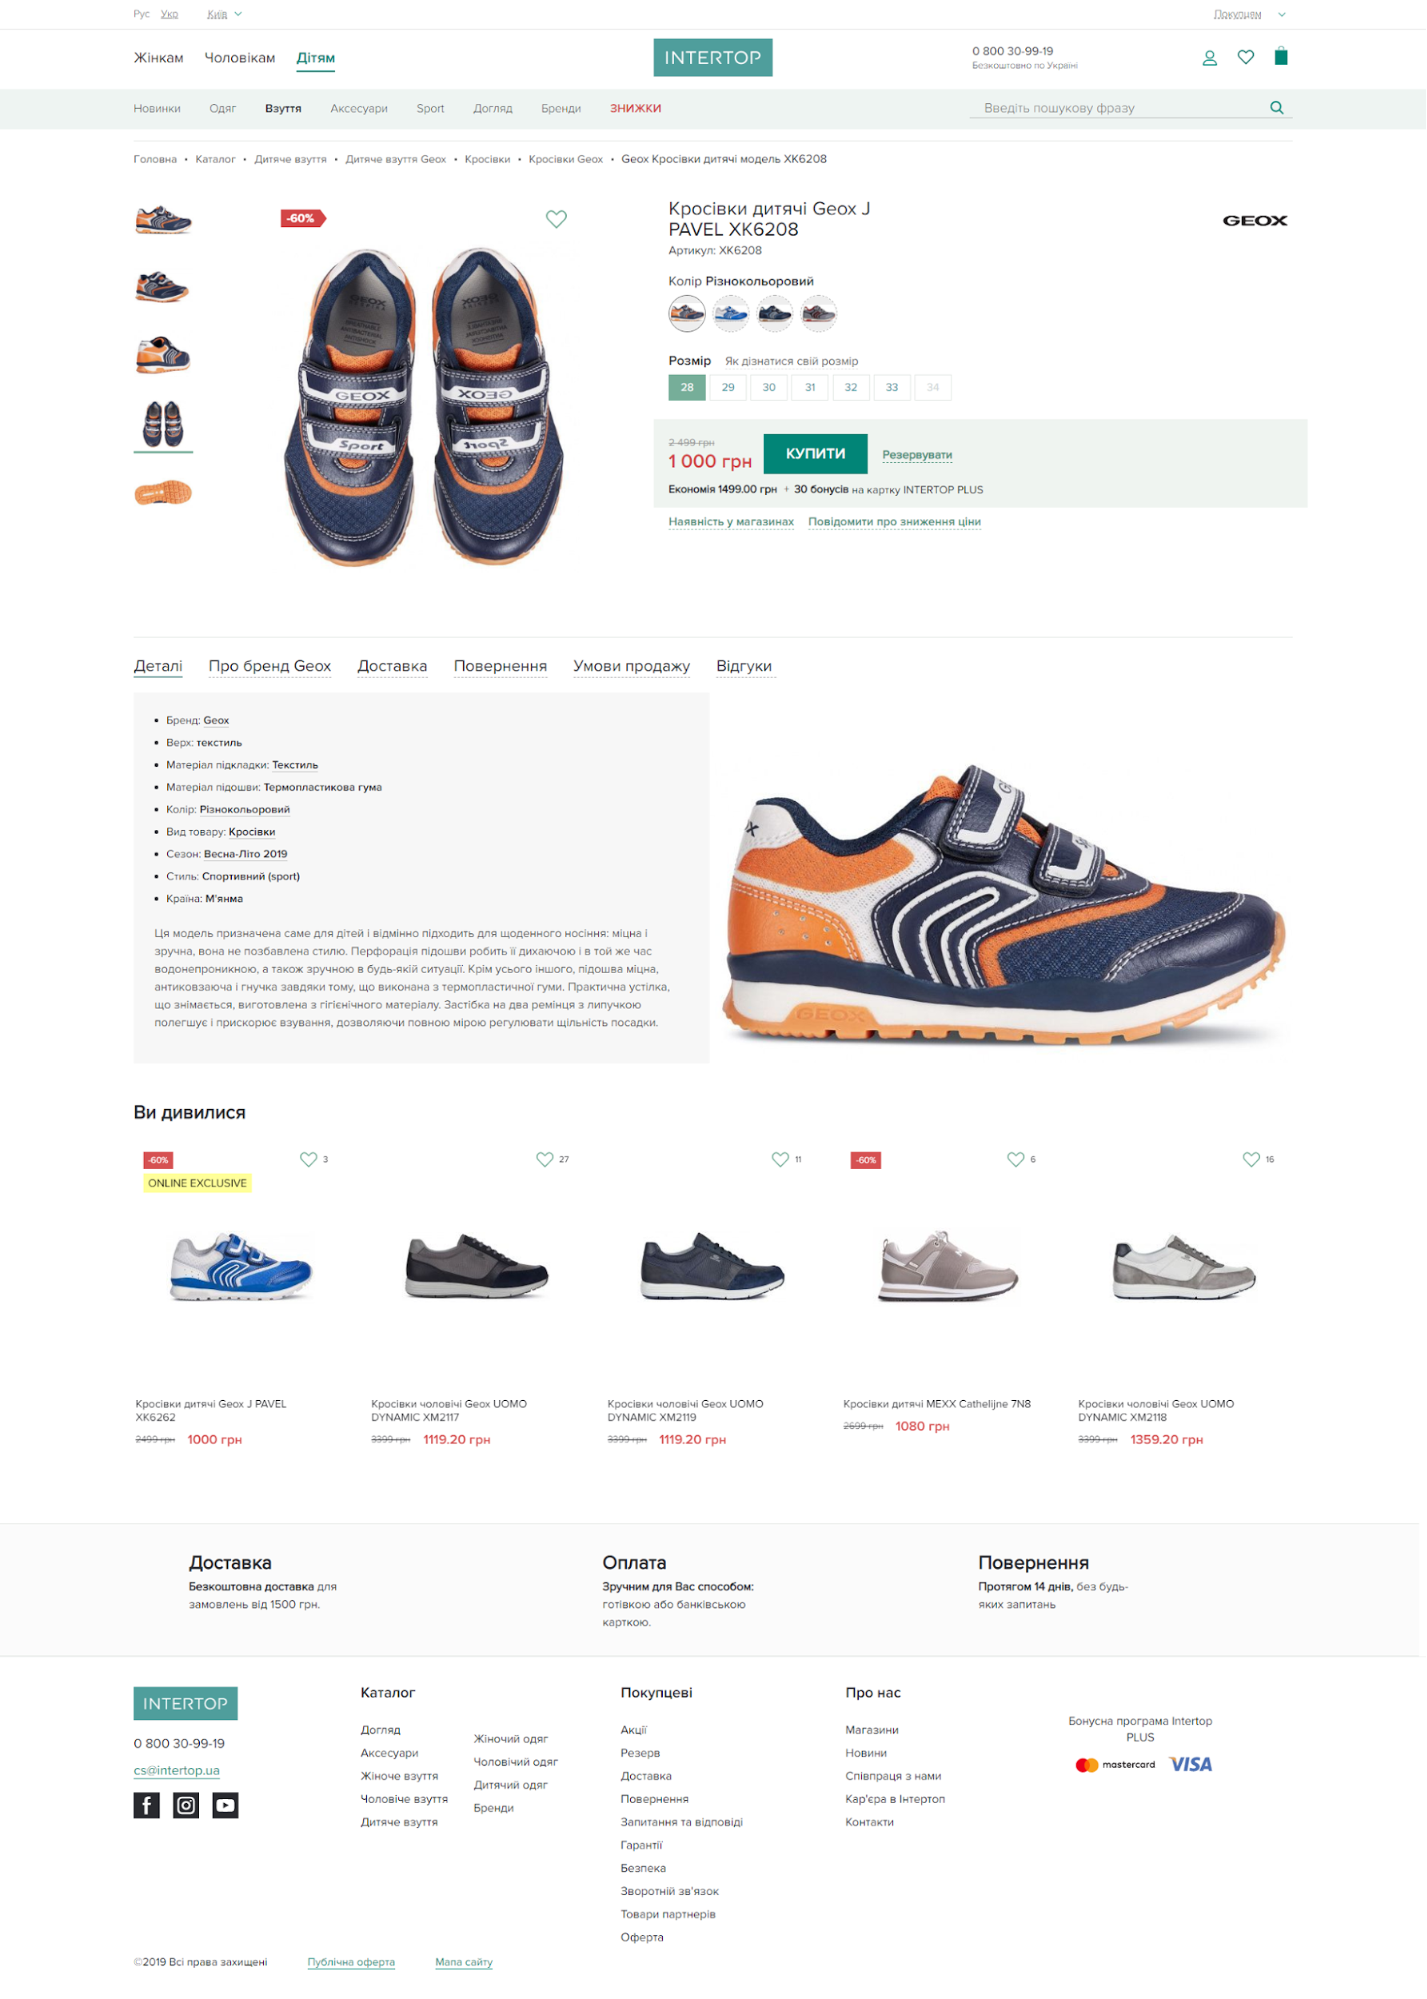 new-product-page-intertop-turum-burum